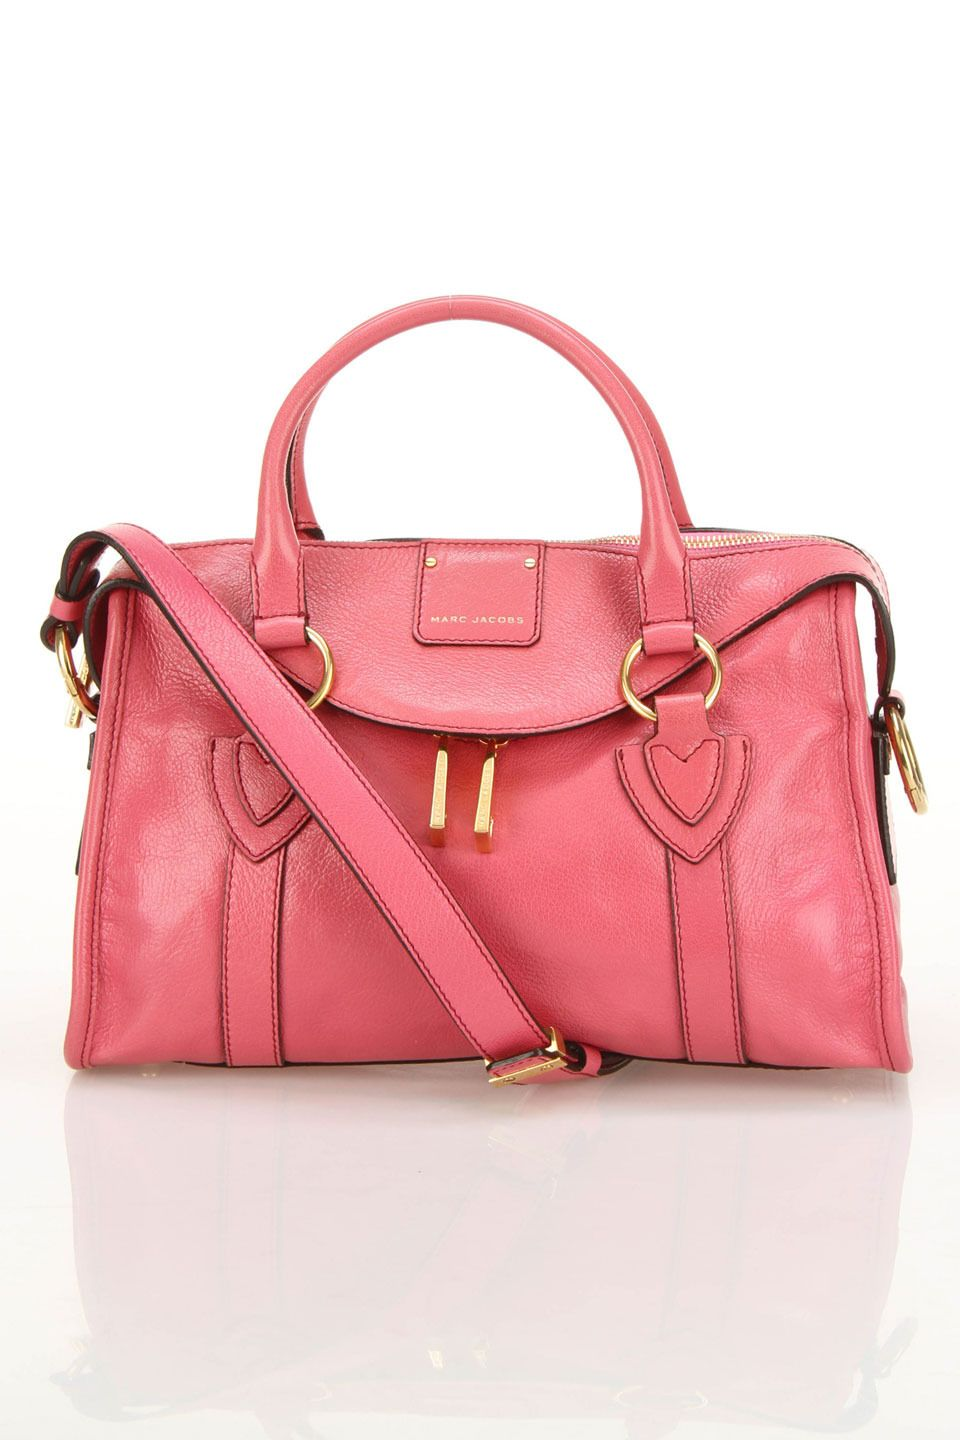 be97f436fce Marc Jacobs Small Fulton Shoulder Bag   Pink